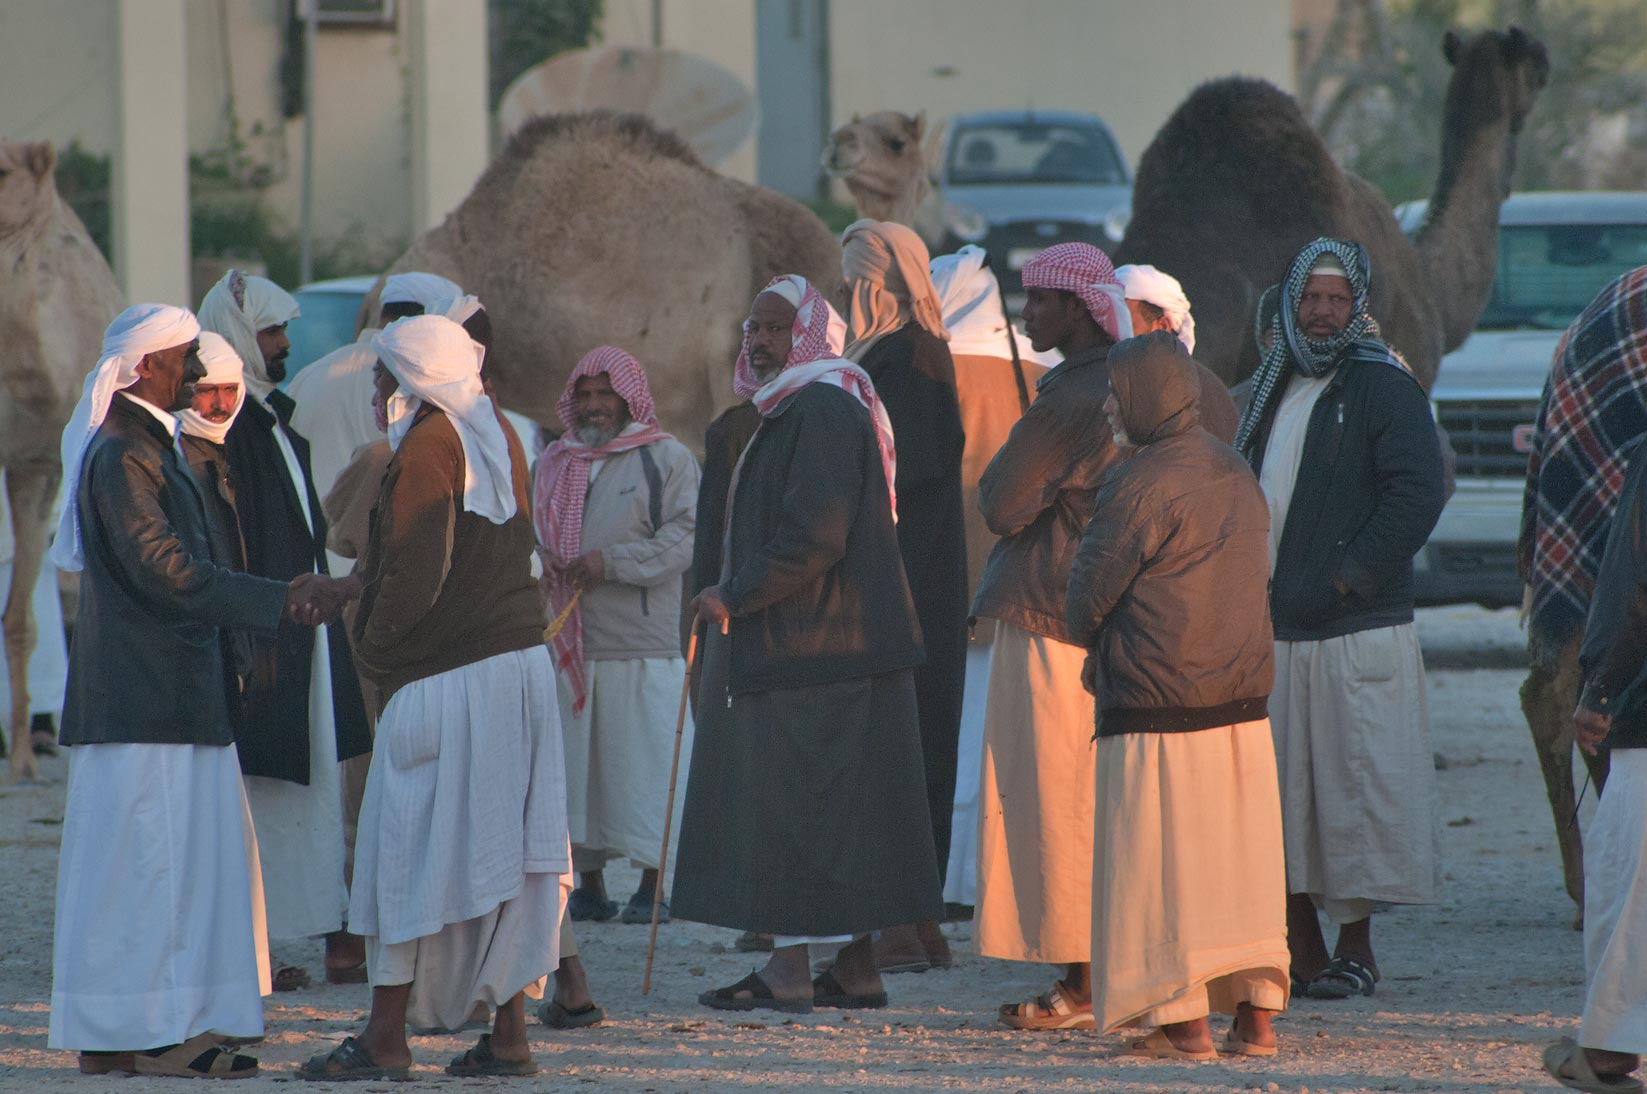 Morning gathering at Camel Market (Souq), in racing section. Doha, Qatar